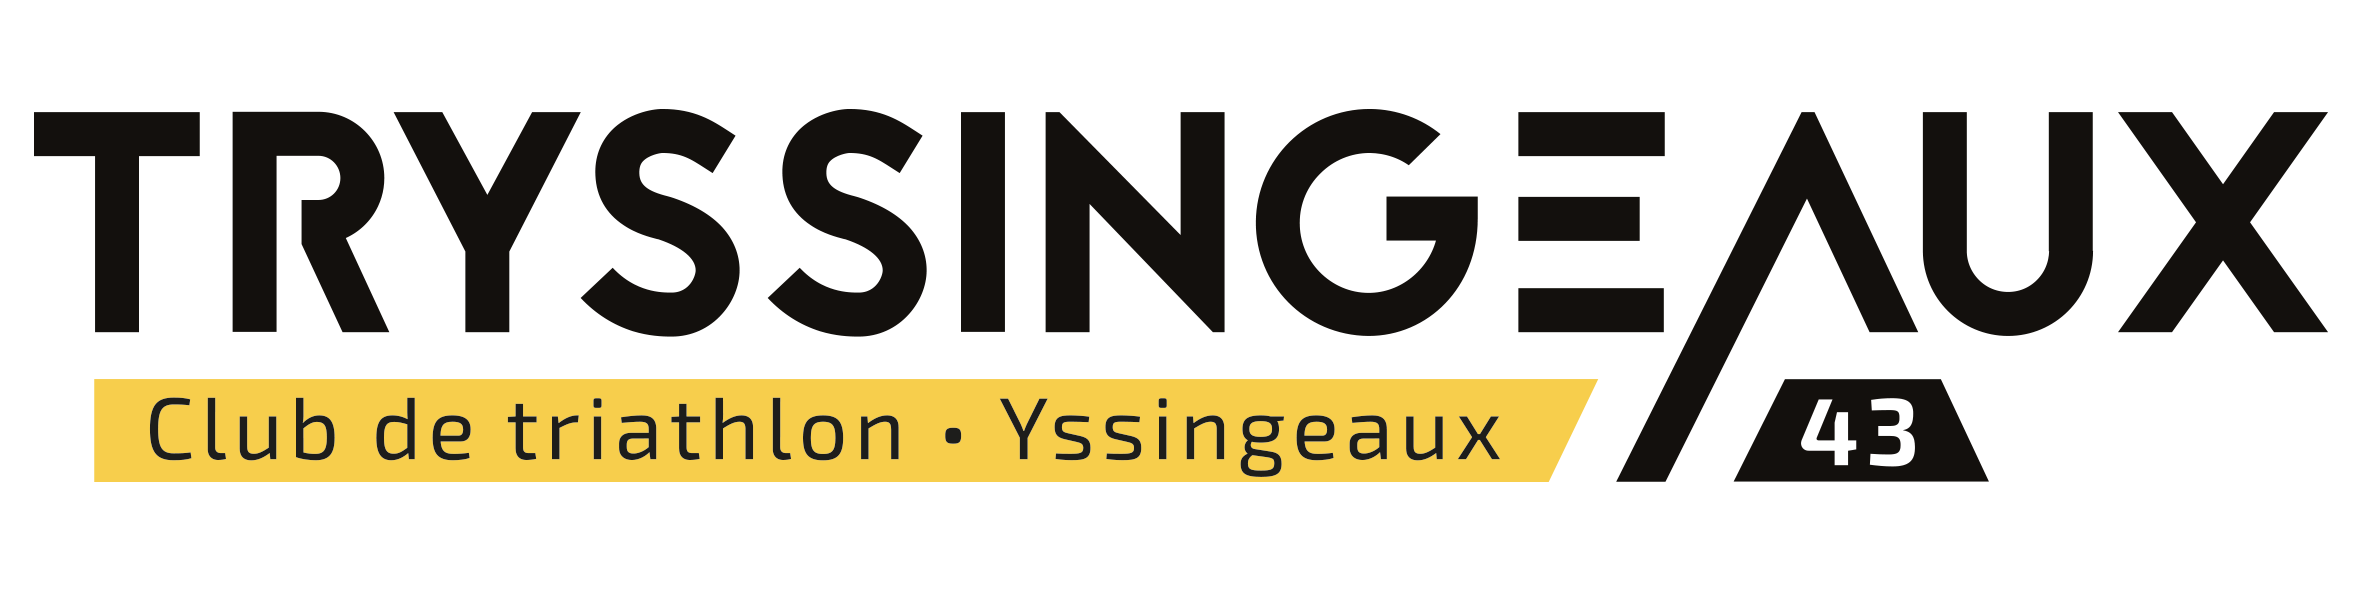 Logo Tryssingeaux, composition du bureau de l'association de triathlon d'Yssingeaux